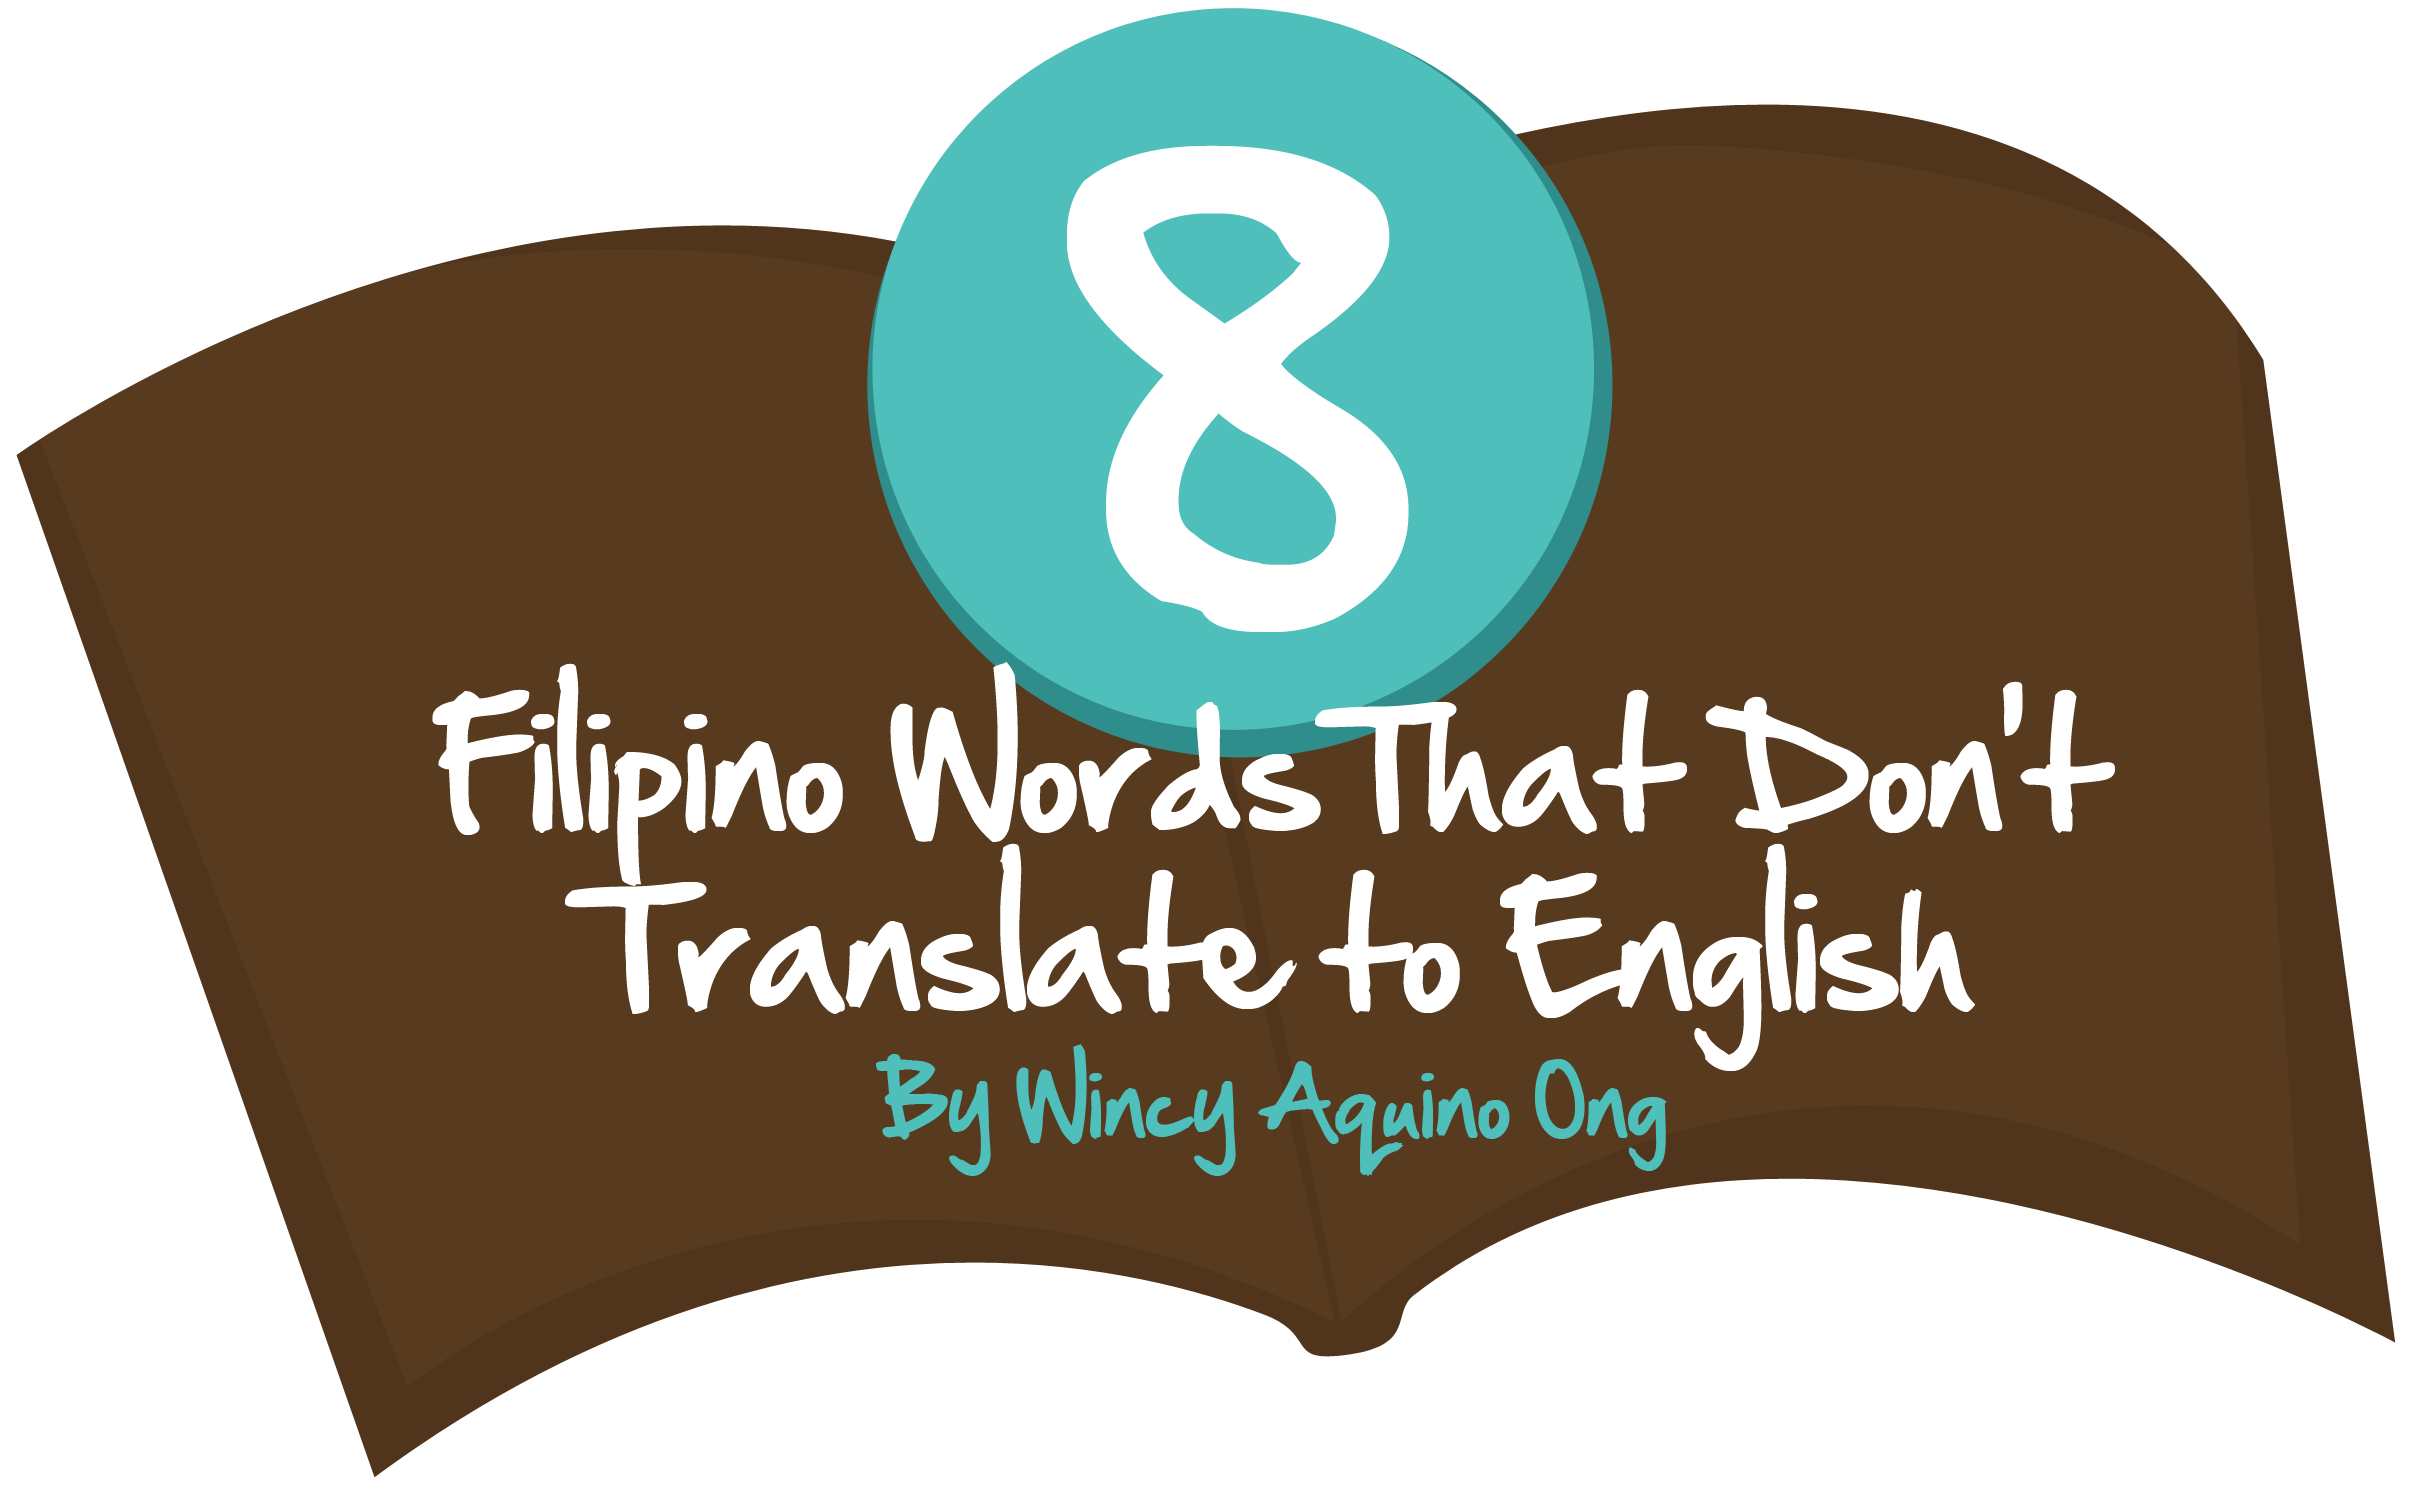 8 Filipino Words That Don't Translate To English